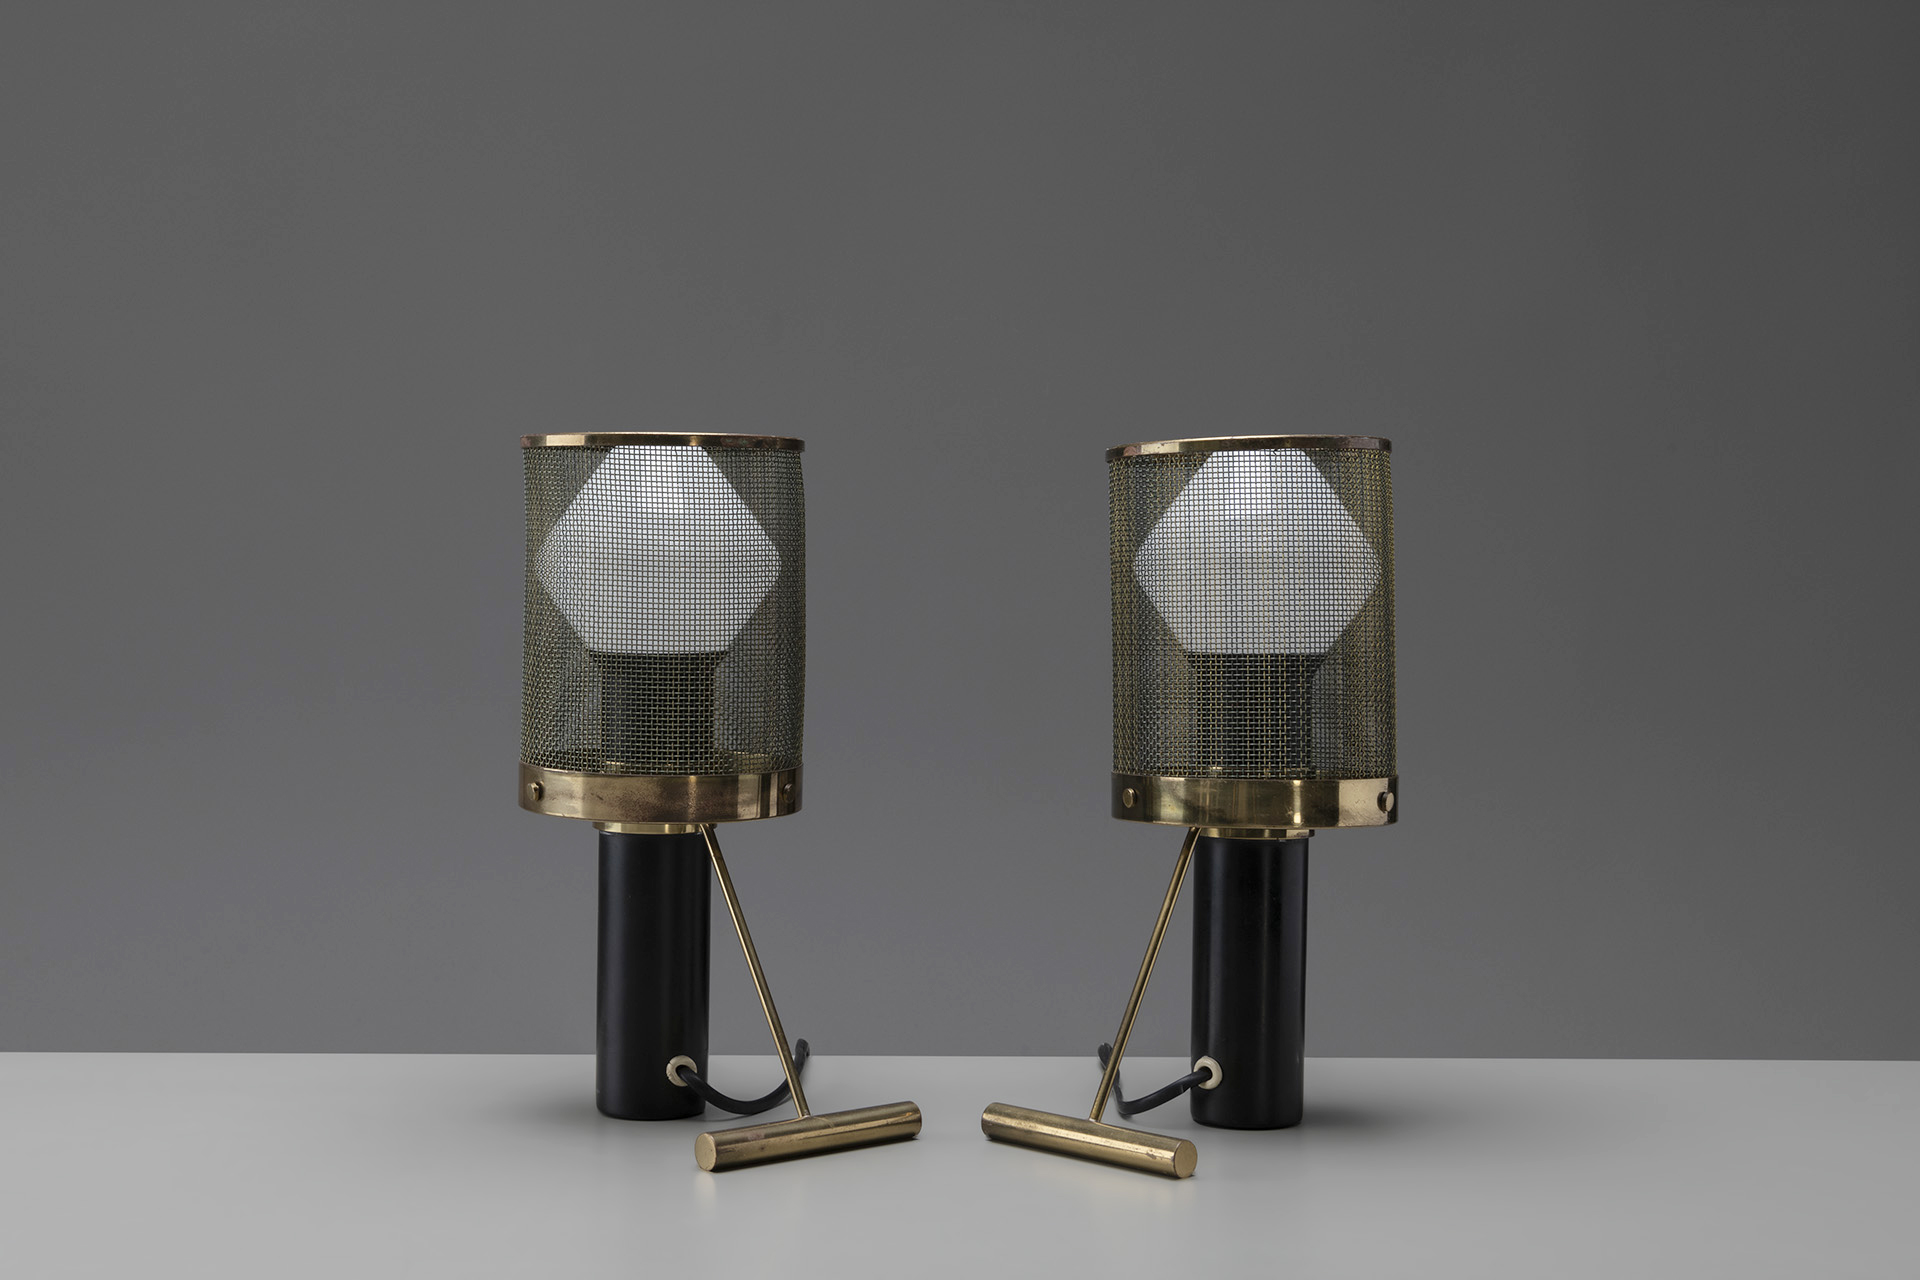 Pair of Table Lamps, Model no. K 11-81